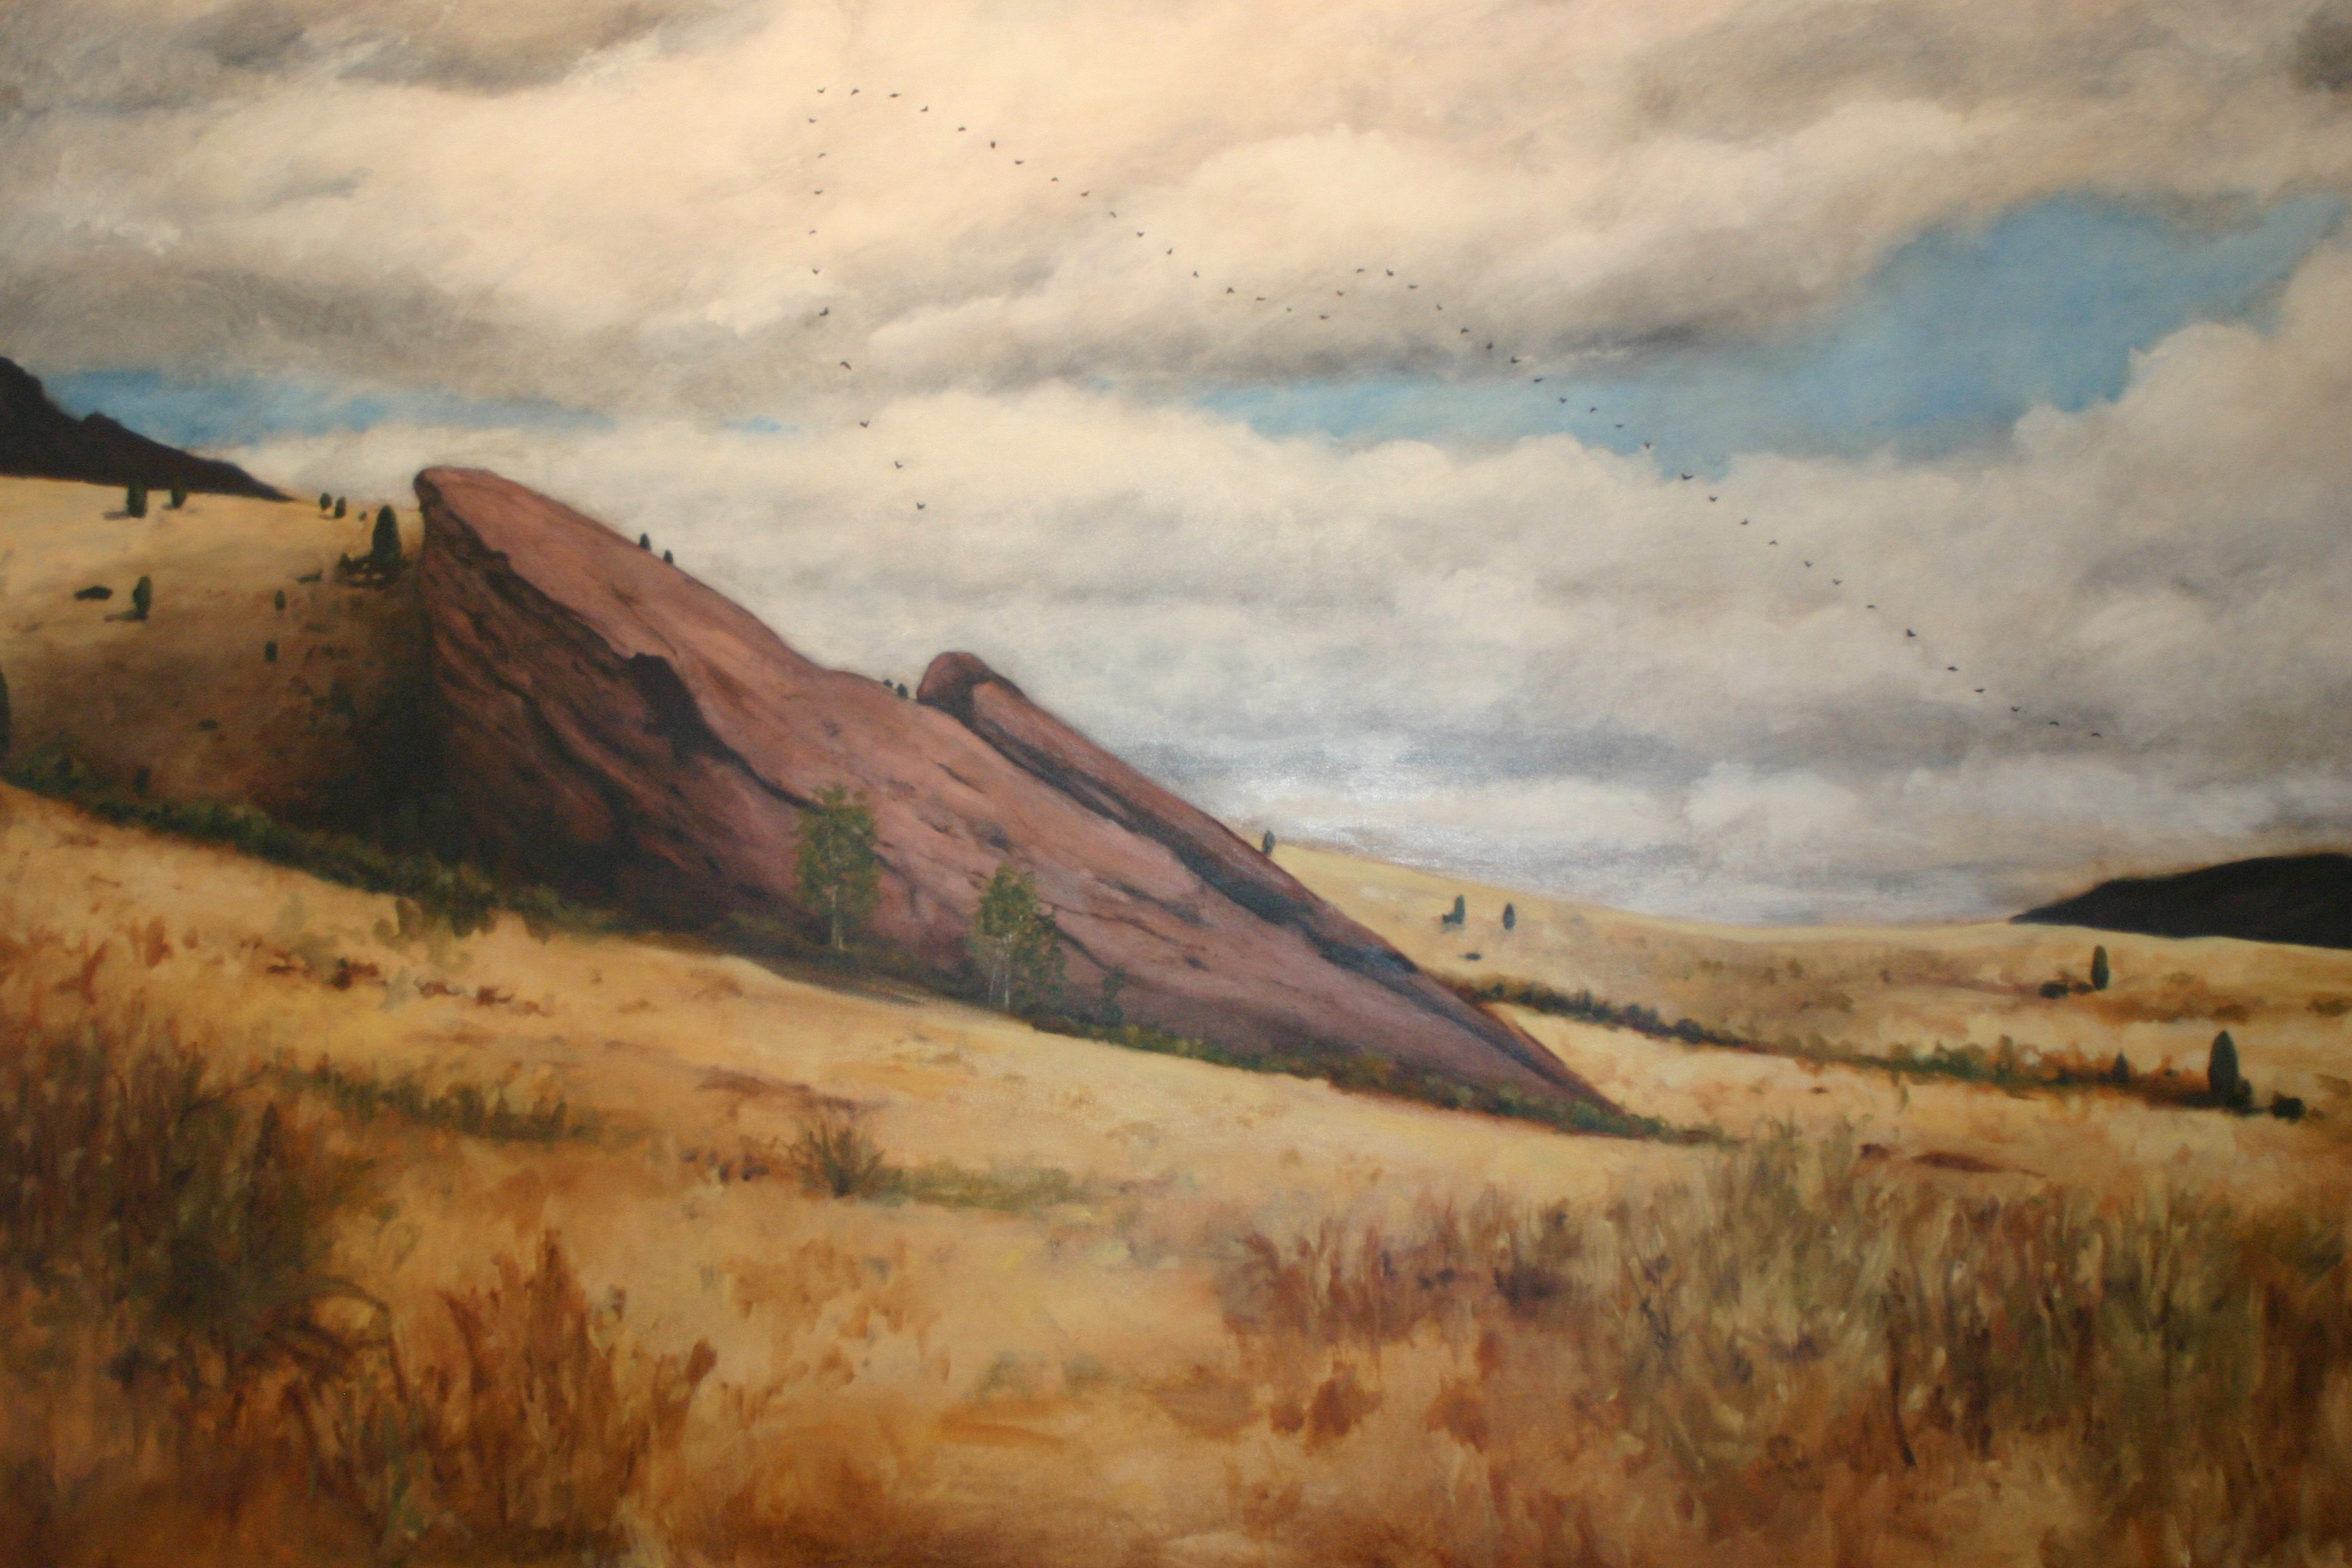 Go to the Untitled (Red Rocks Landscape Painting) page